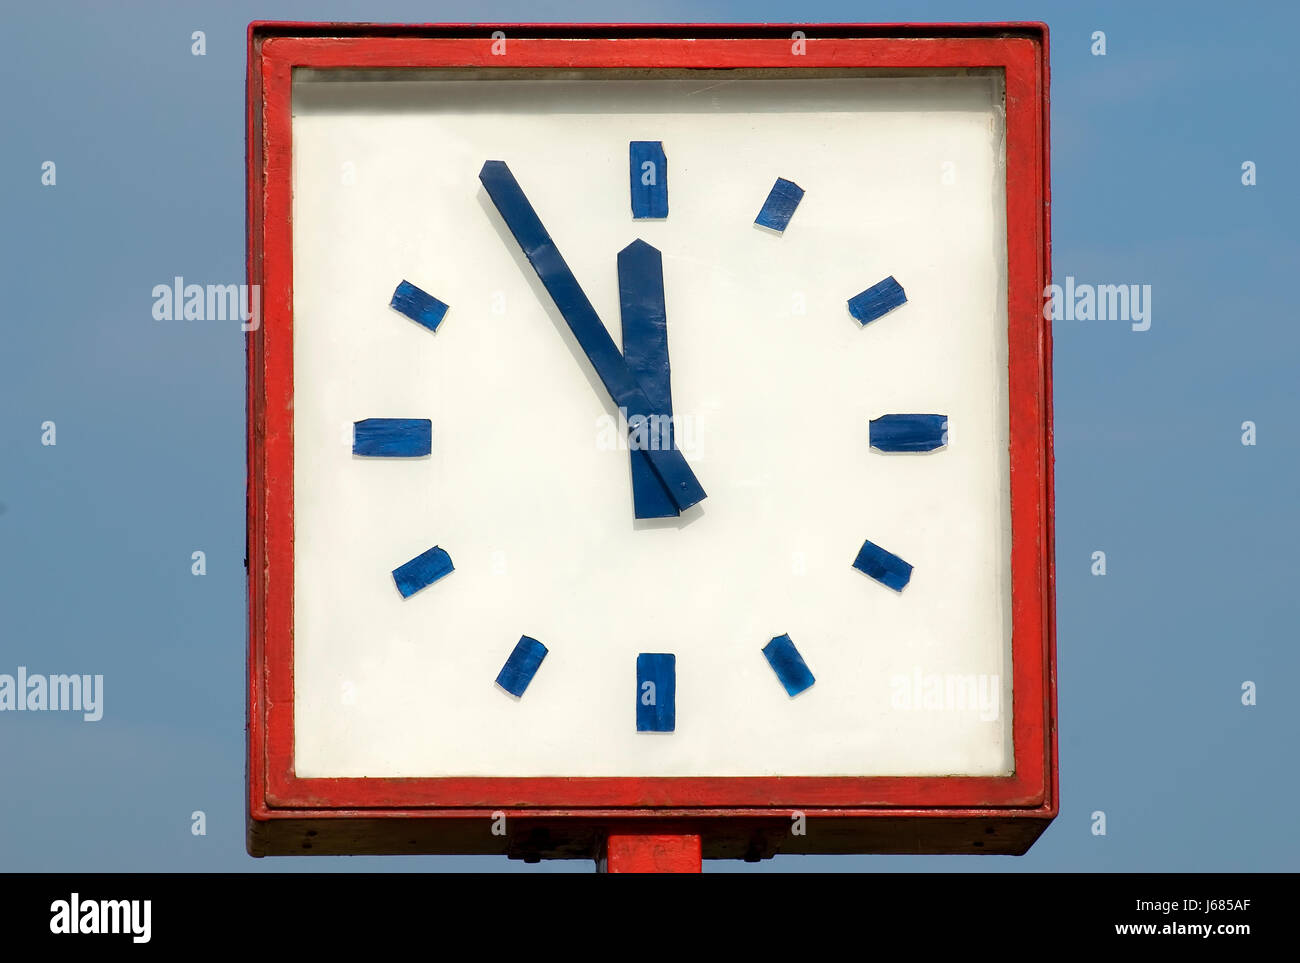 clock time forwards 5 12 torschlusspanik zeitmangel 12 fnf fuenf hchste - Stock Image